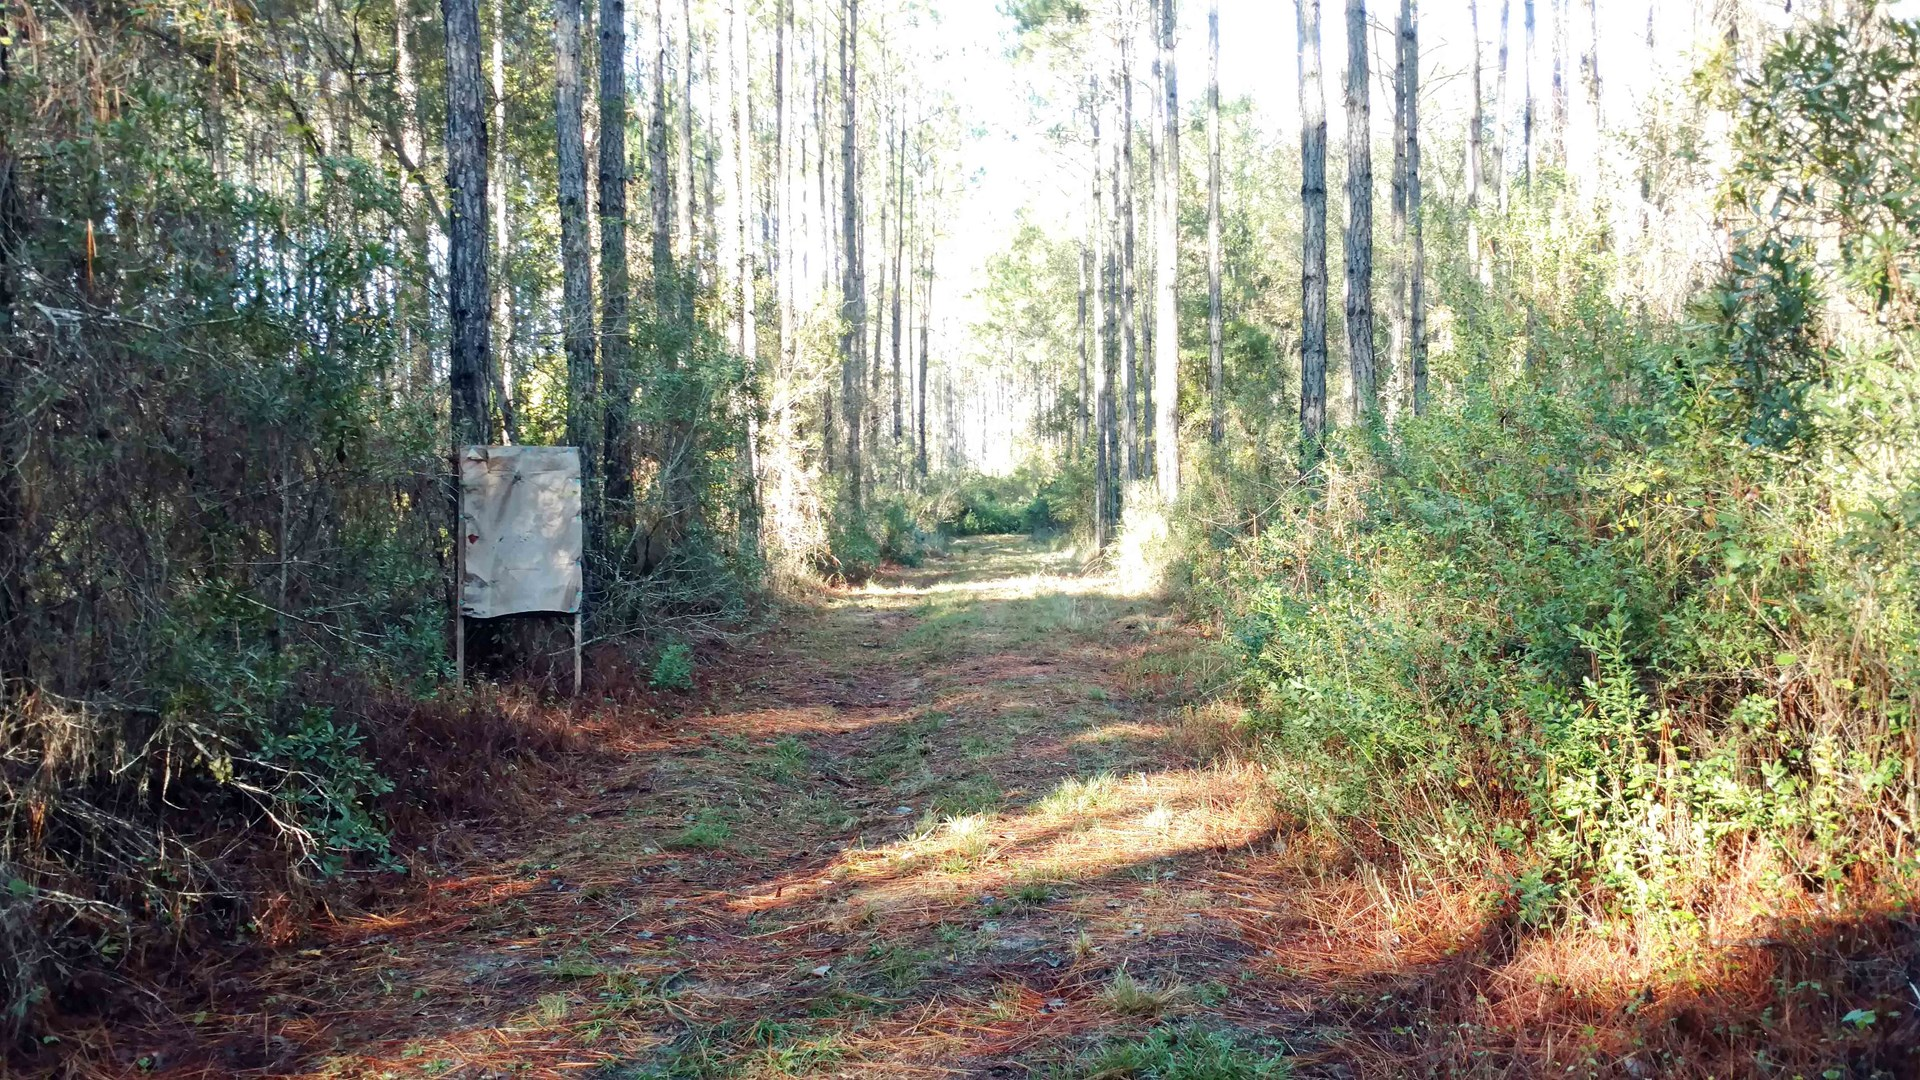 120 ACRES FOR SALE IN THE OSCEOLA NATIONAL FOREST